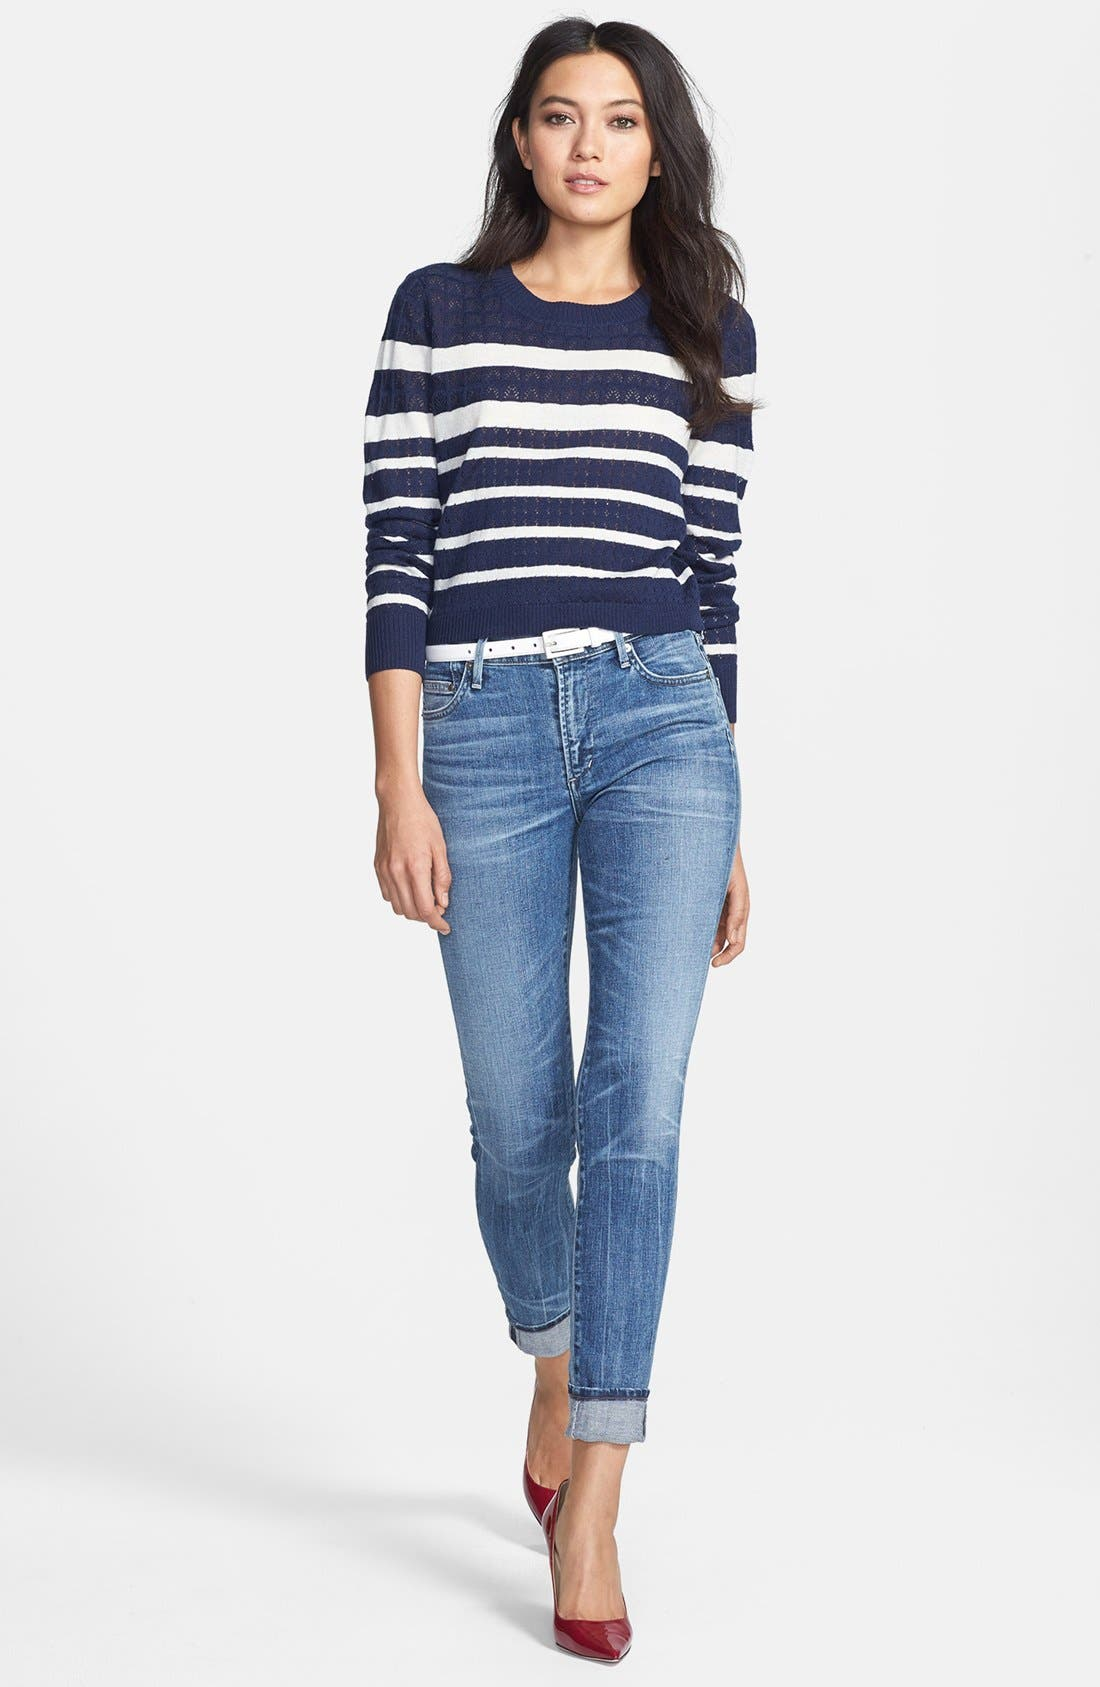 Alternate Image 1 Selected - Soft Joie Sweater & Citizens of Humanity Jeans